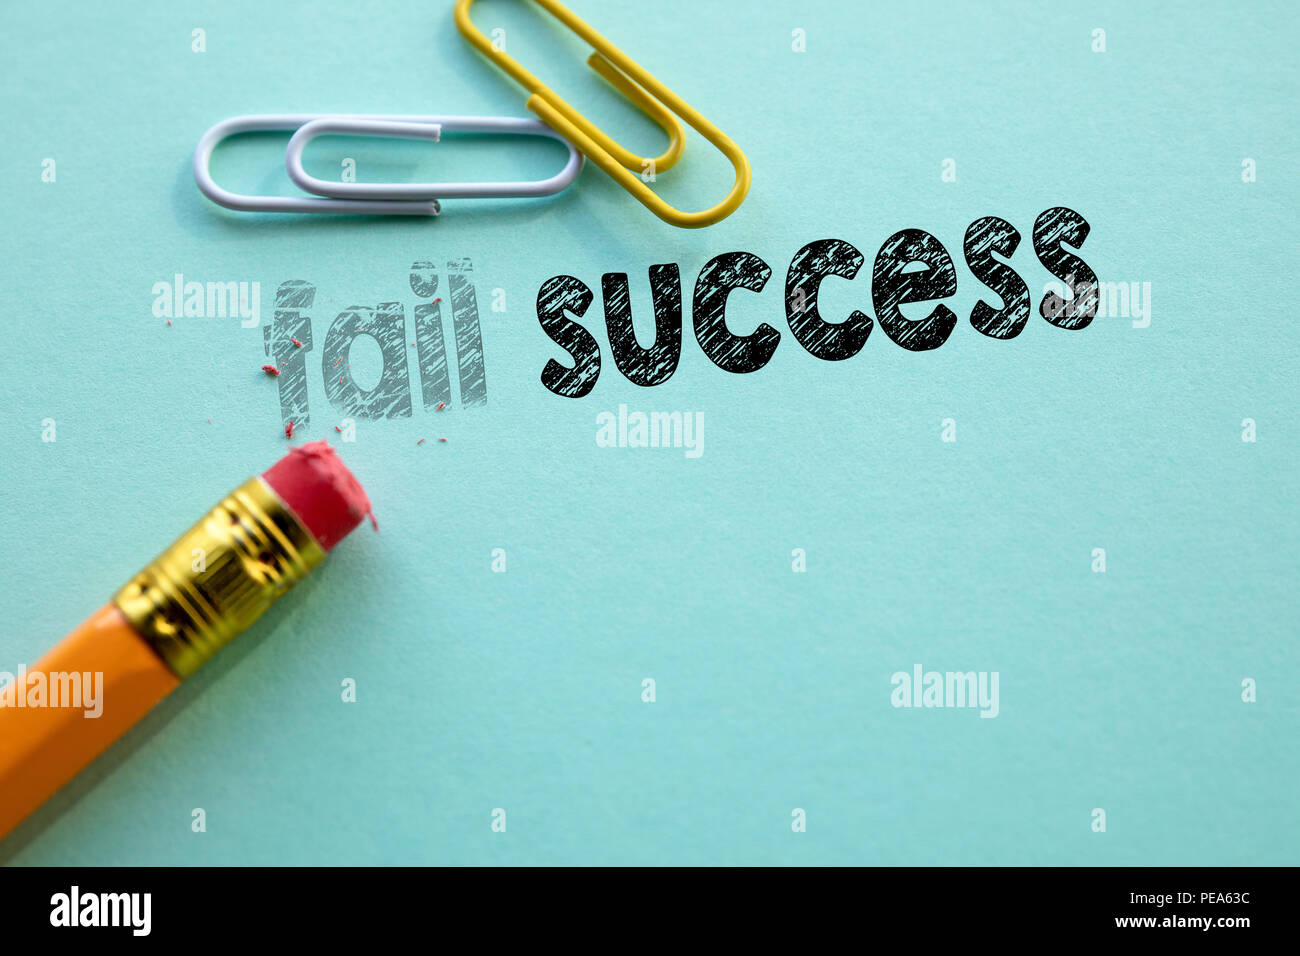 Making fail in to success by eraser - Stock Image